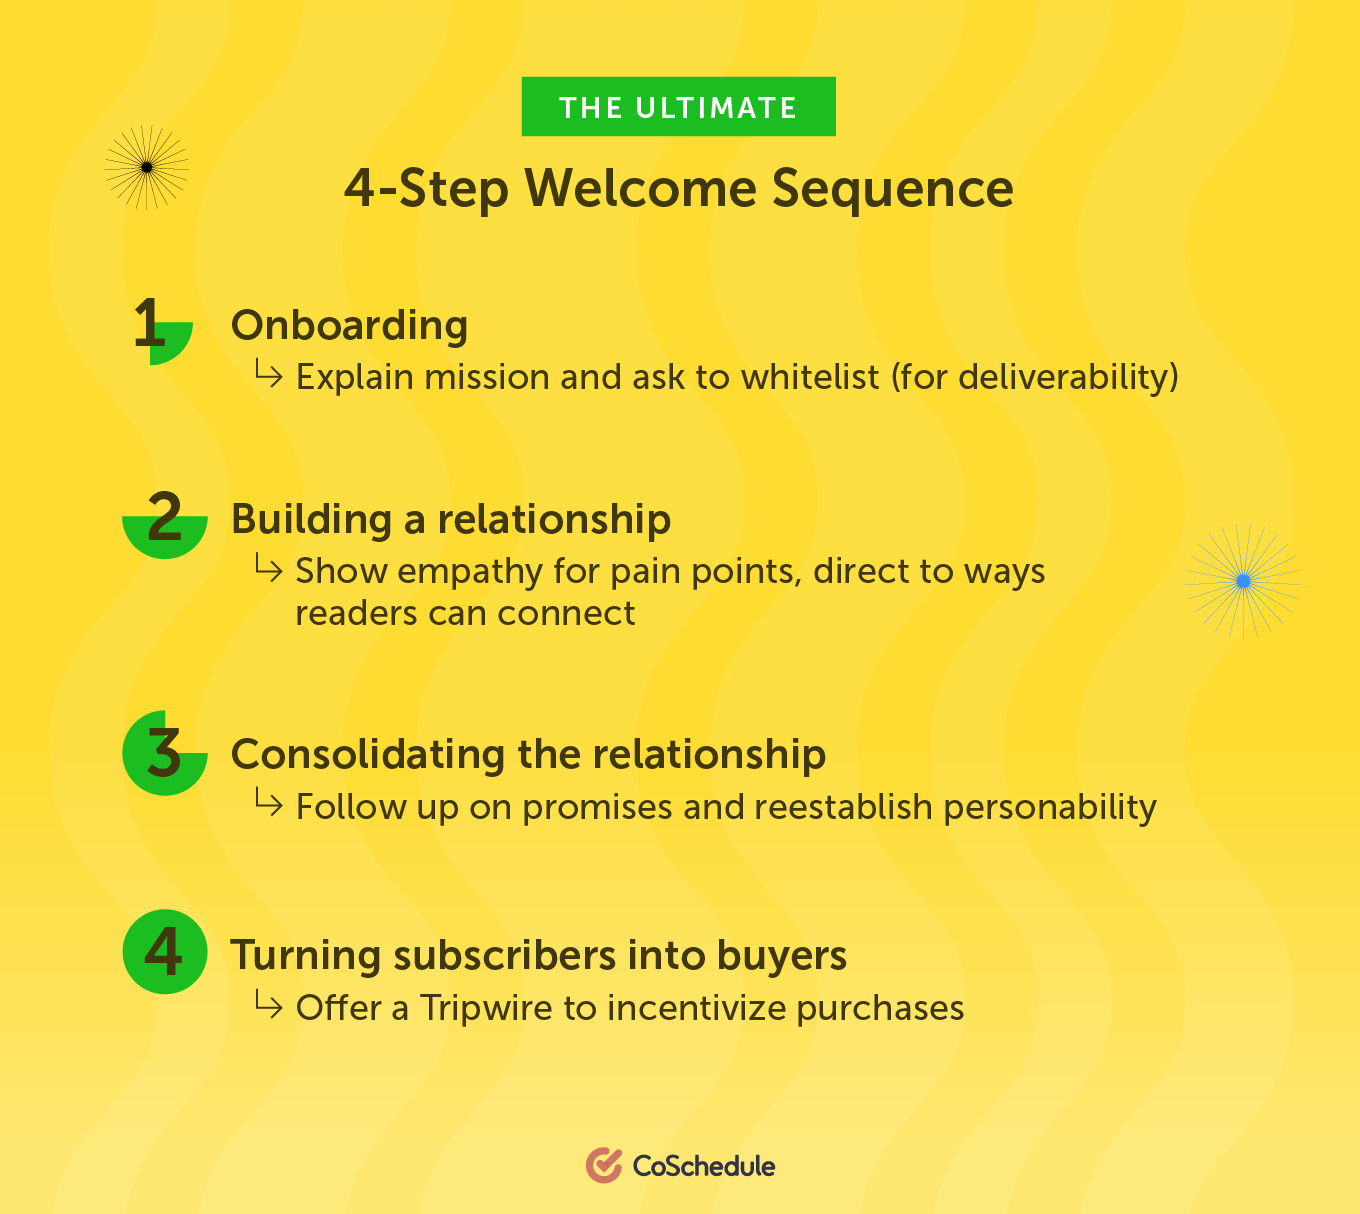 The ultimate 4-step welcome sequence